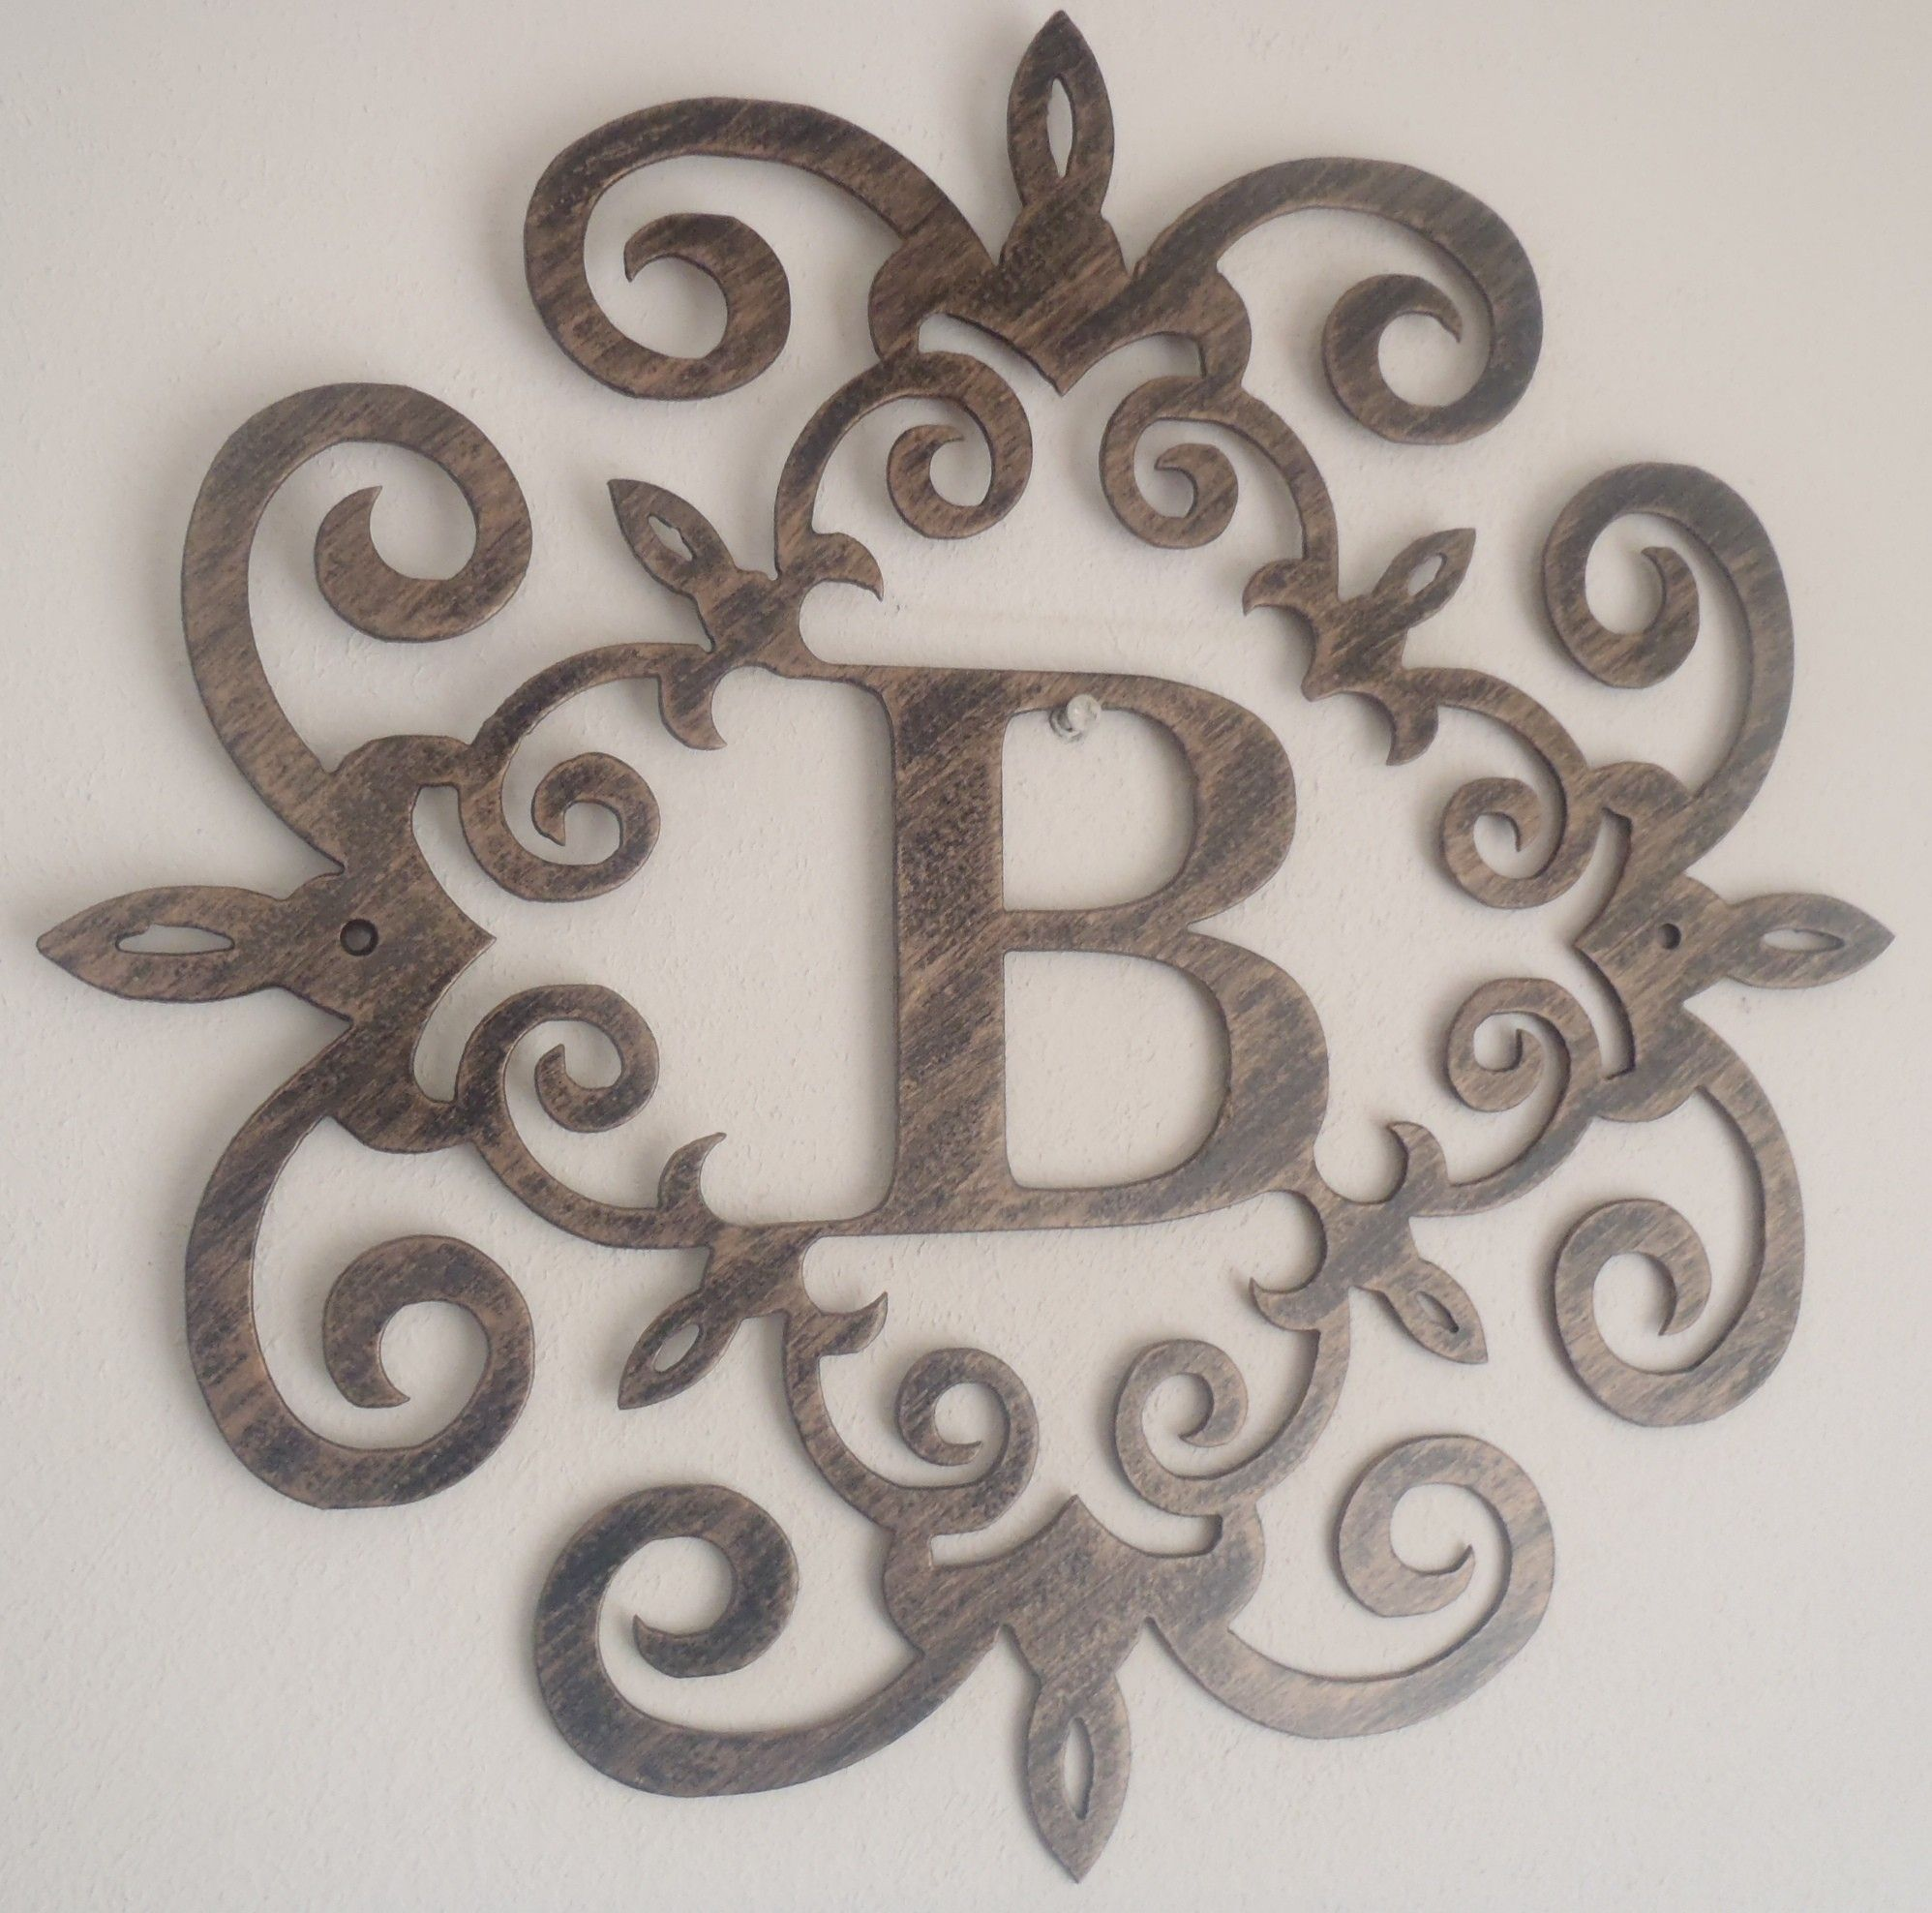 Family Initial, Monogram Inside A Metal Scroll With B Letter, Wall Decor,  Metal